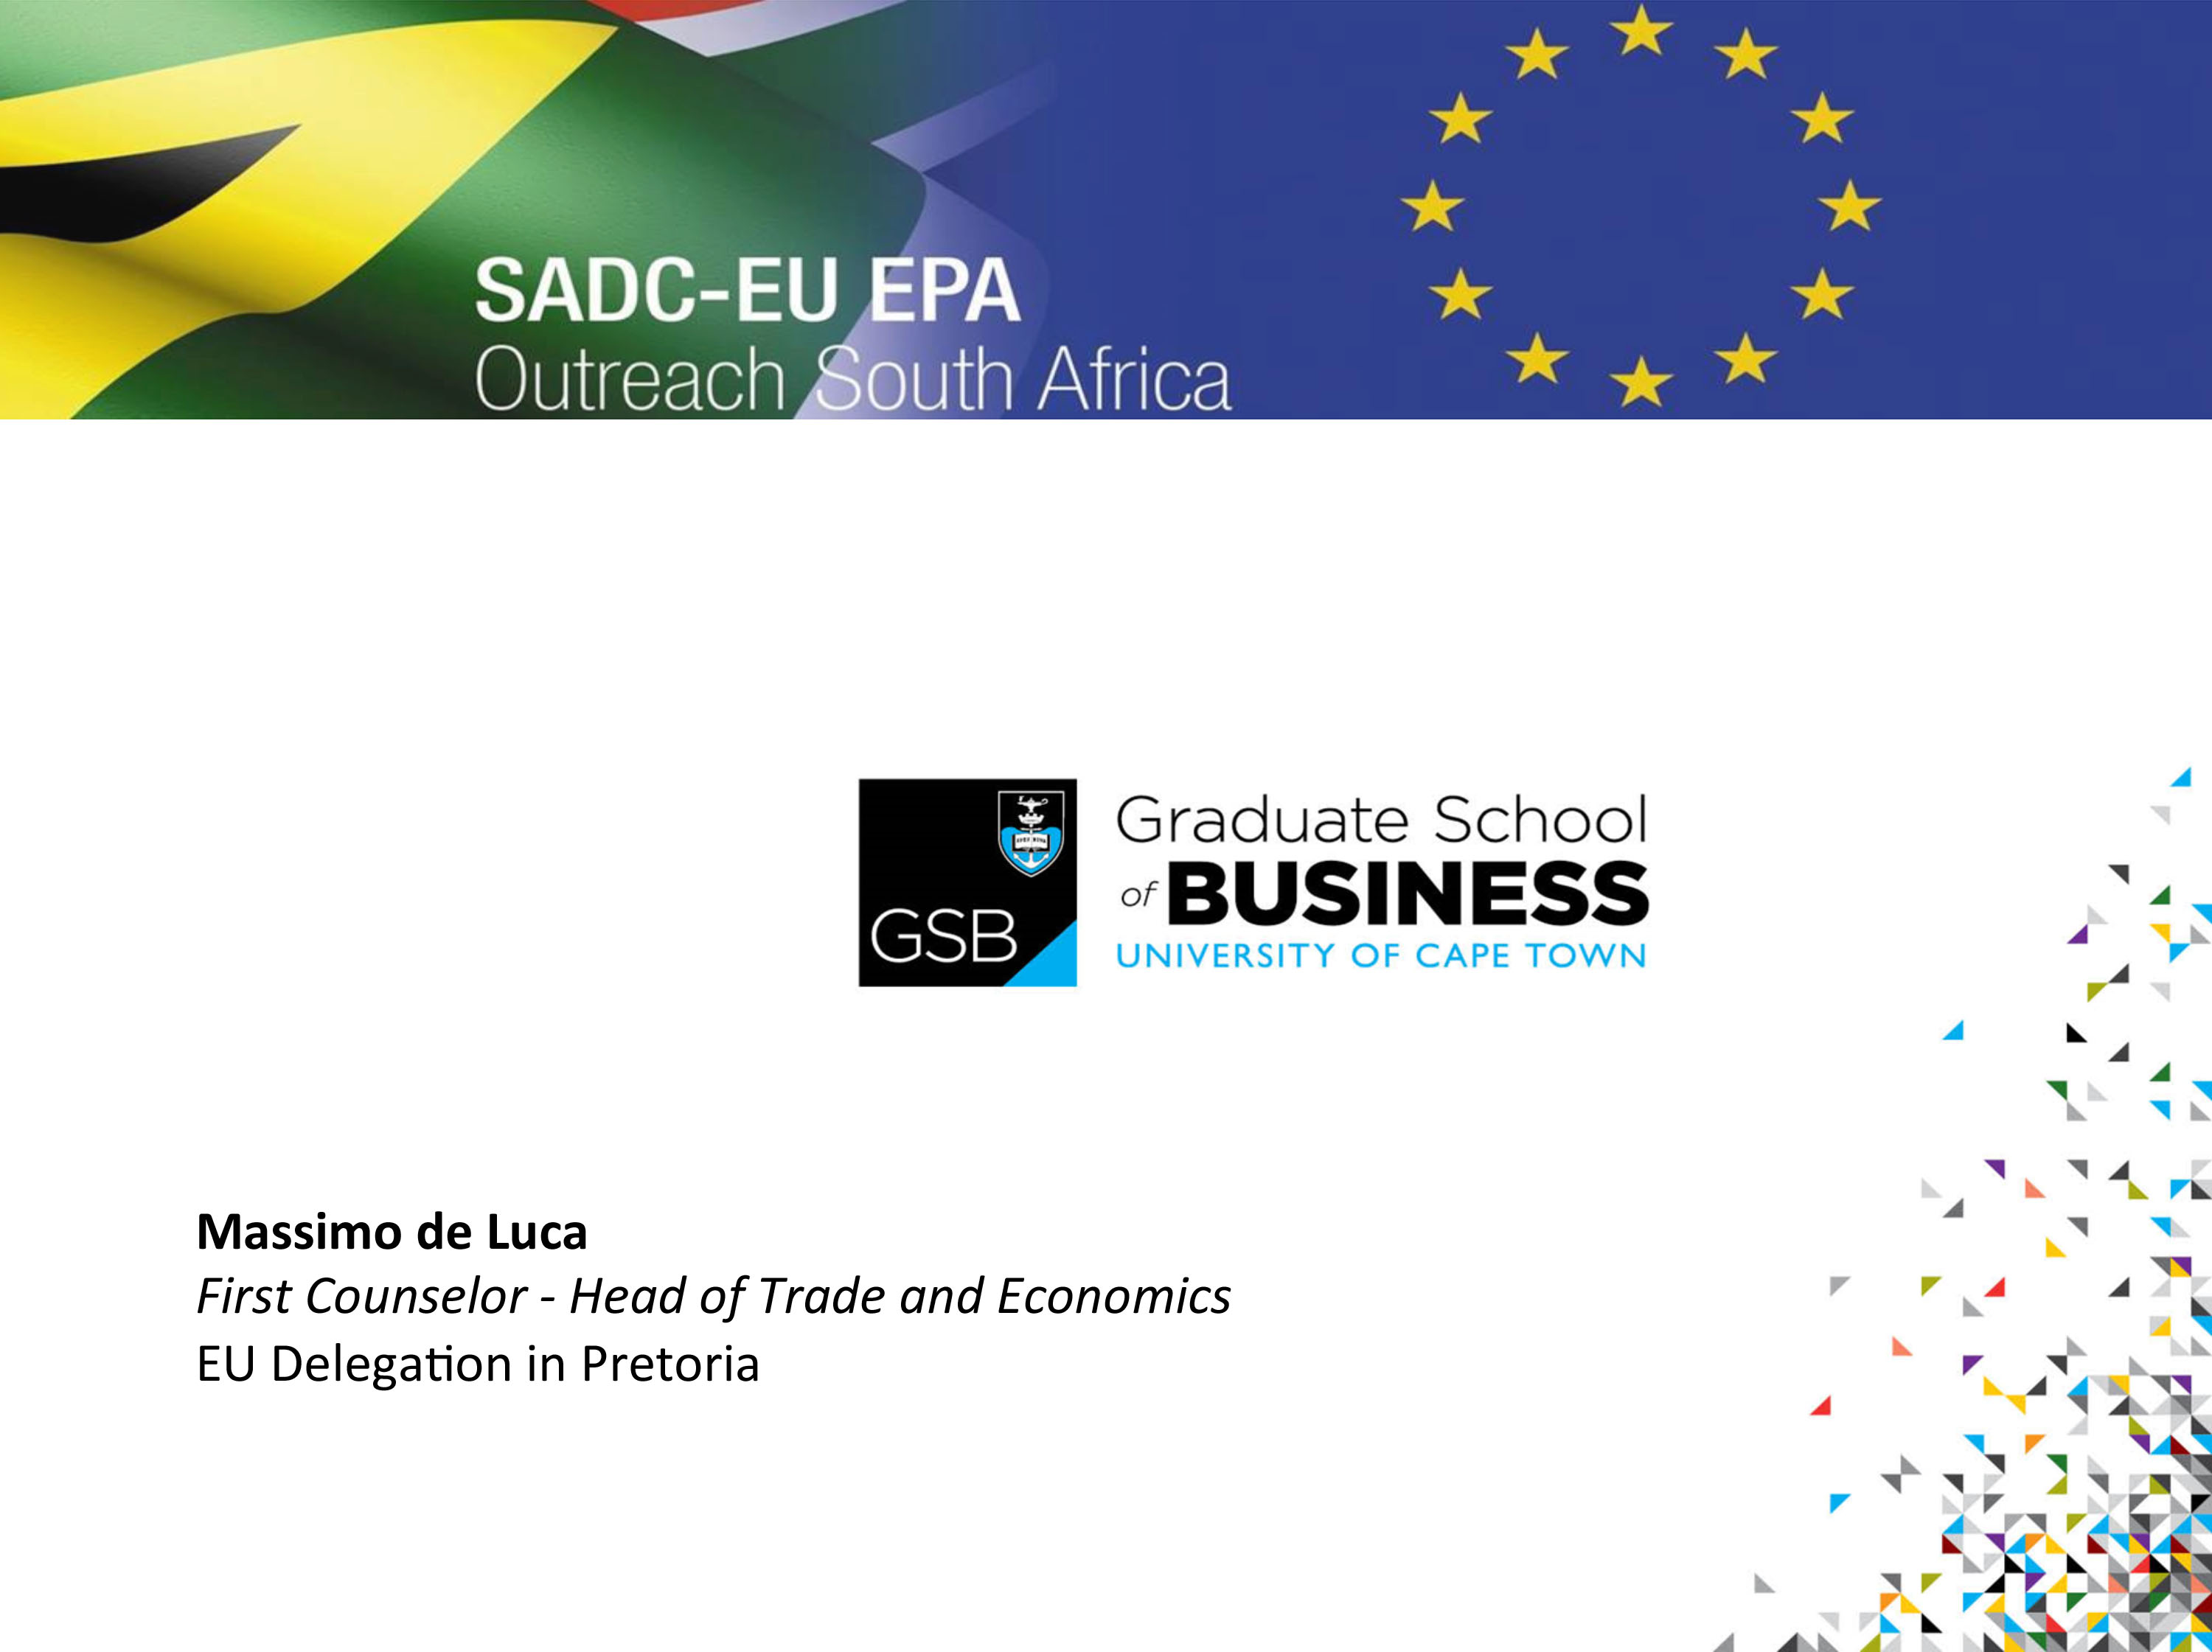 SADC INDUSTRLIASATION WEEK – How international trade and FDI contribute to regional value chains